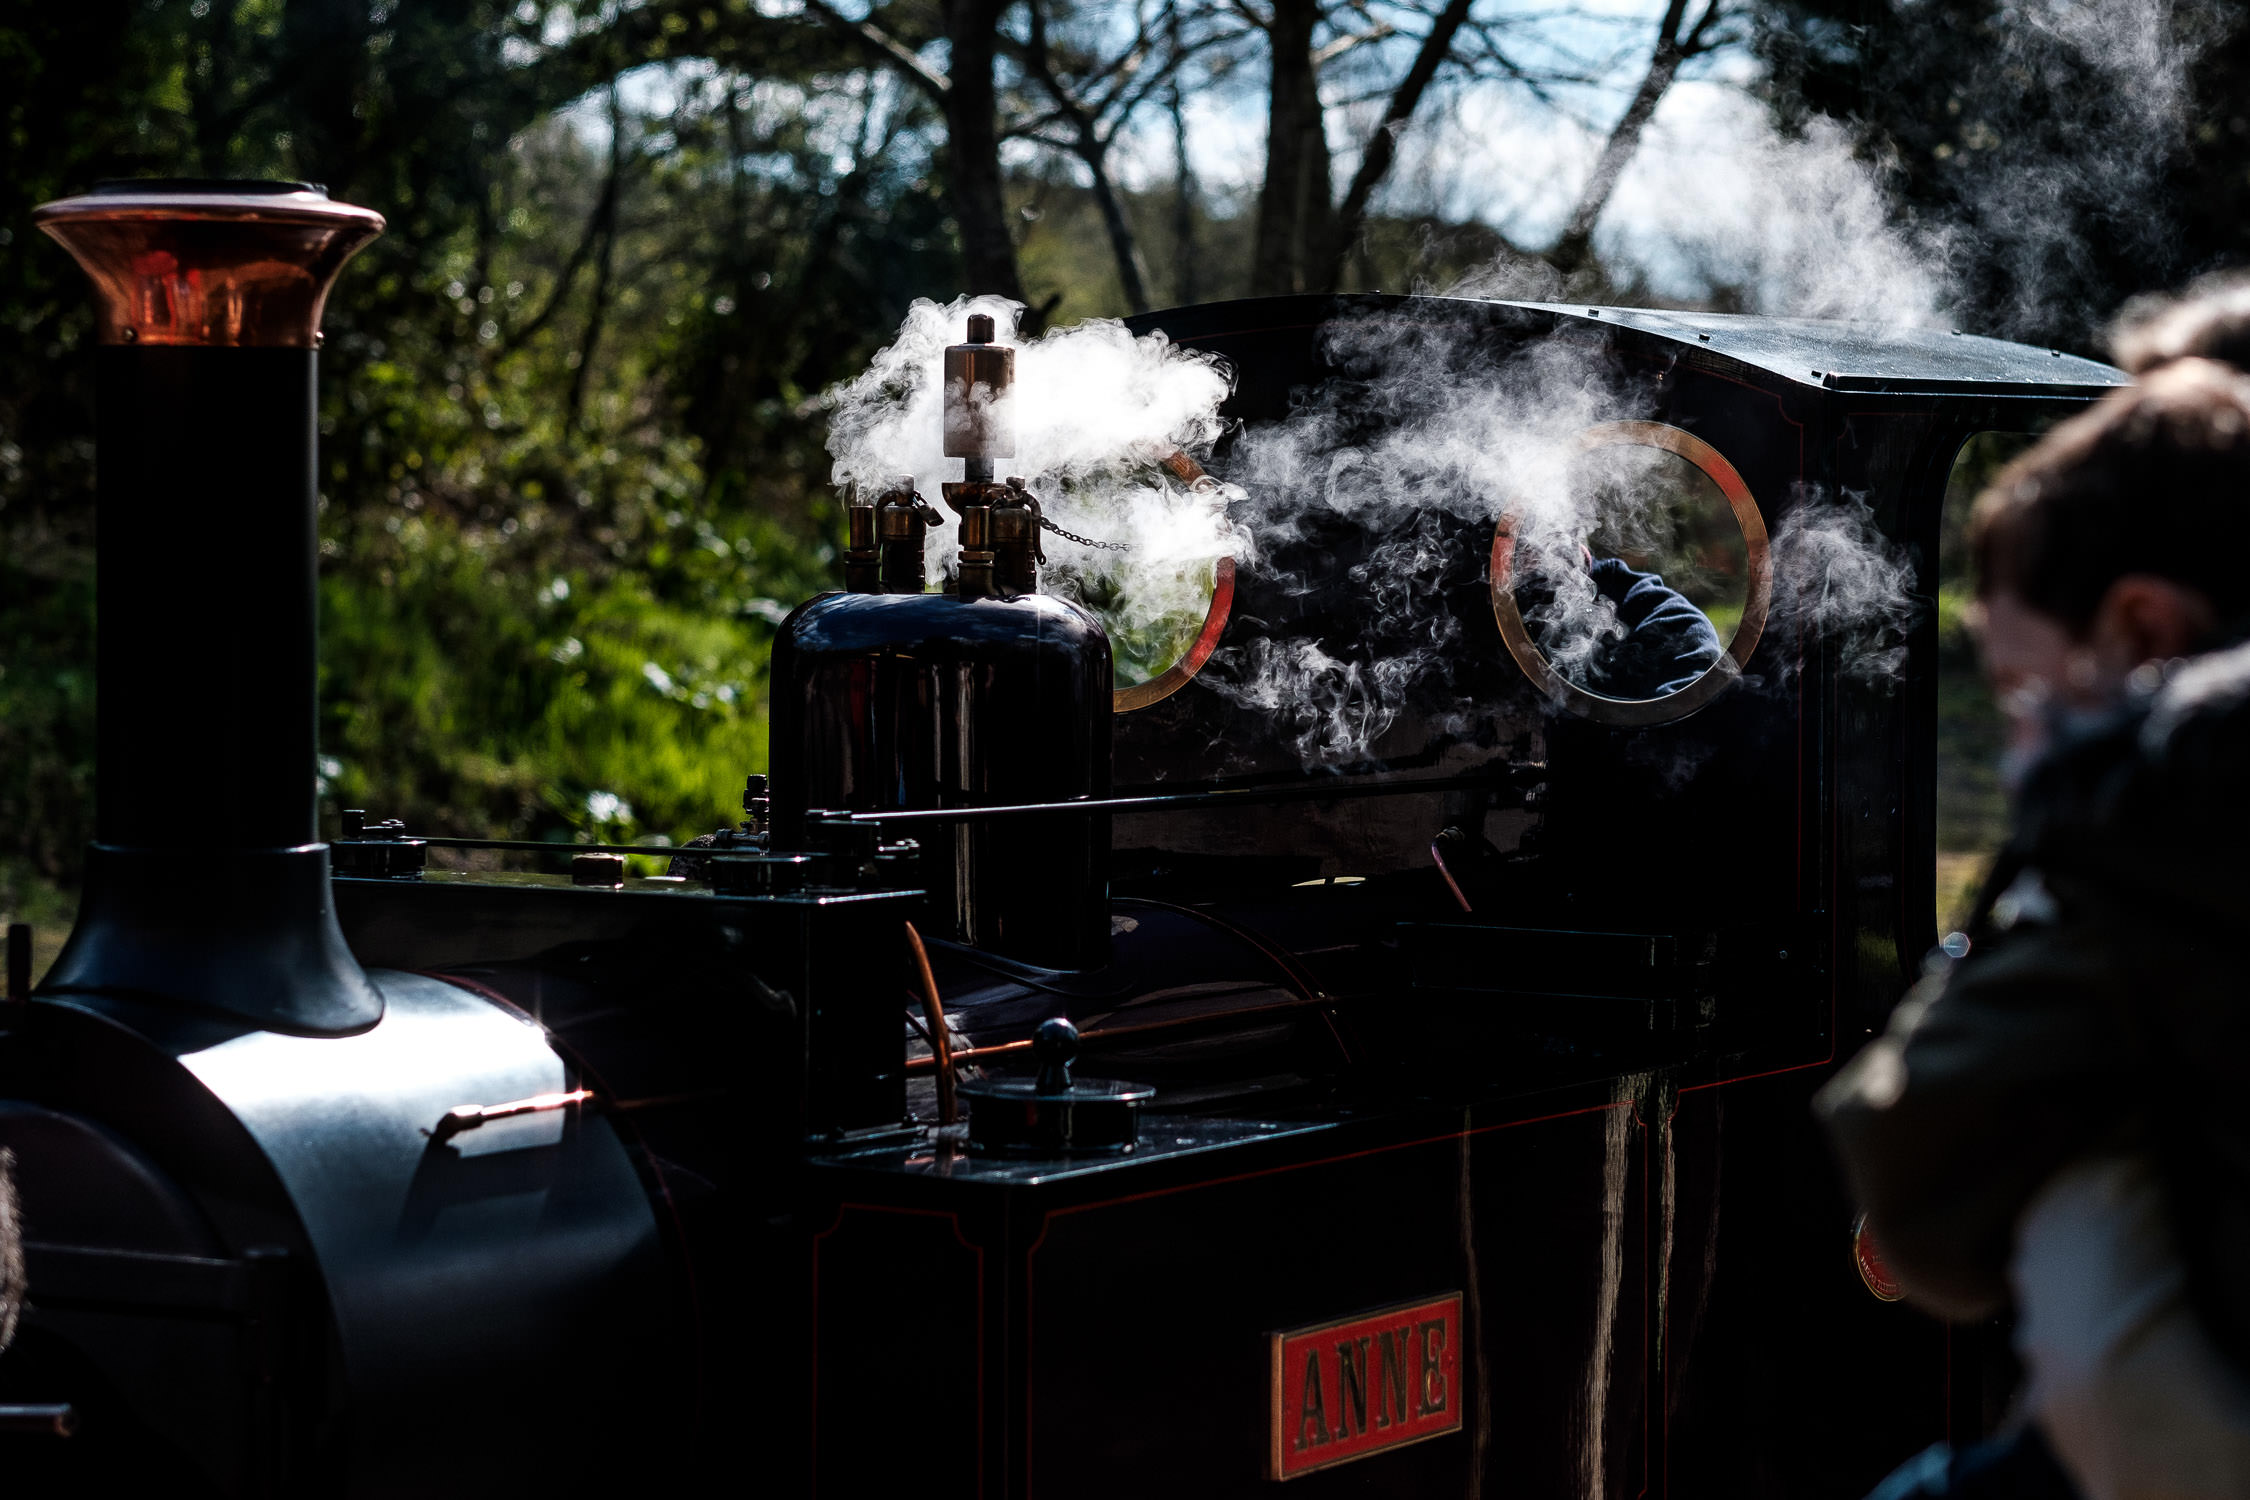 perrygrove railway forest of dean